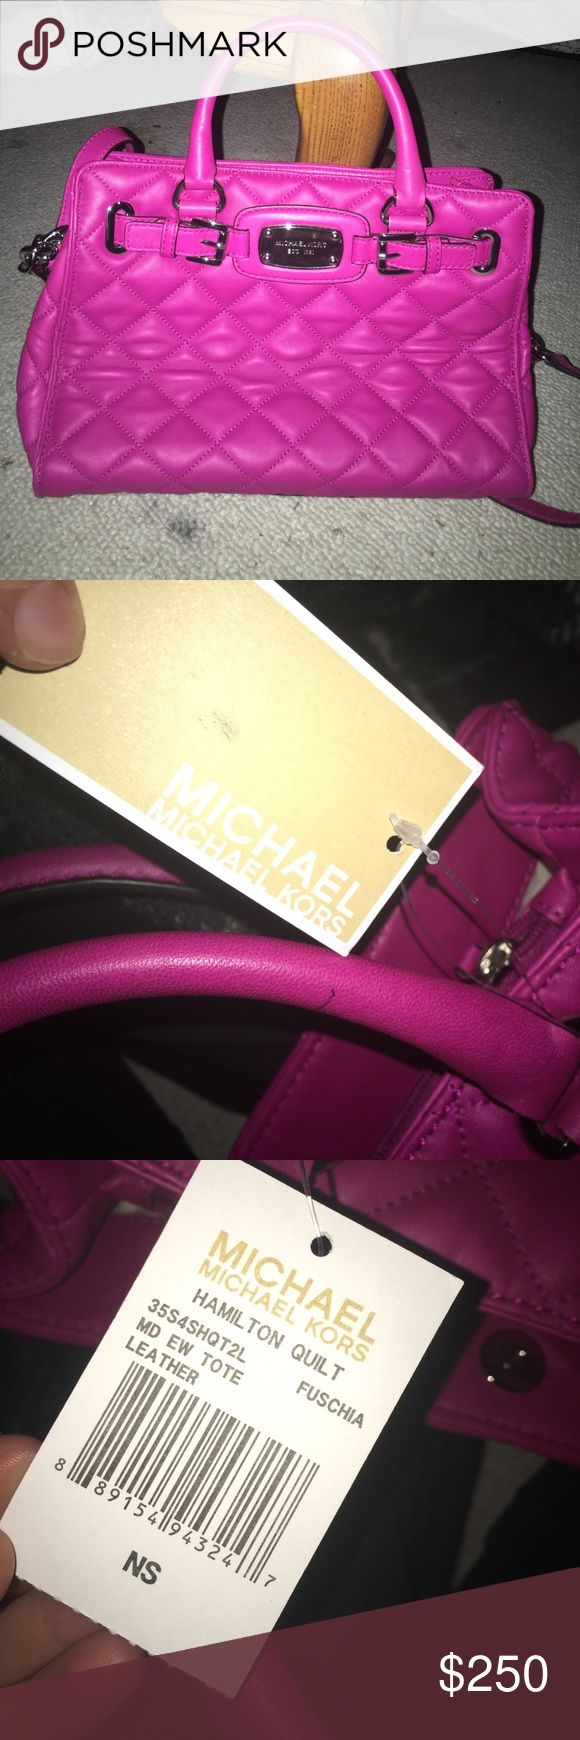 Michael Kors bag Super cute and bright colored never worn but moving and can't take. Brand new for a great price! Michael Kors Bags